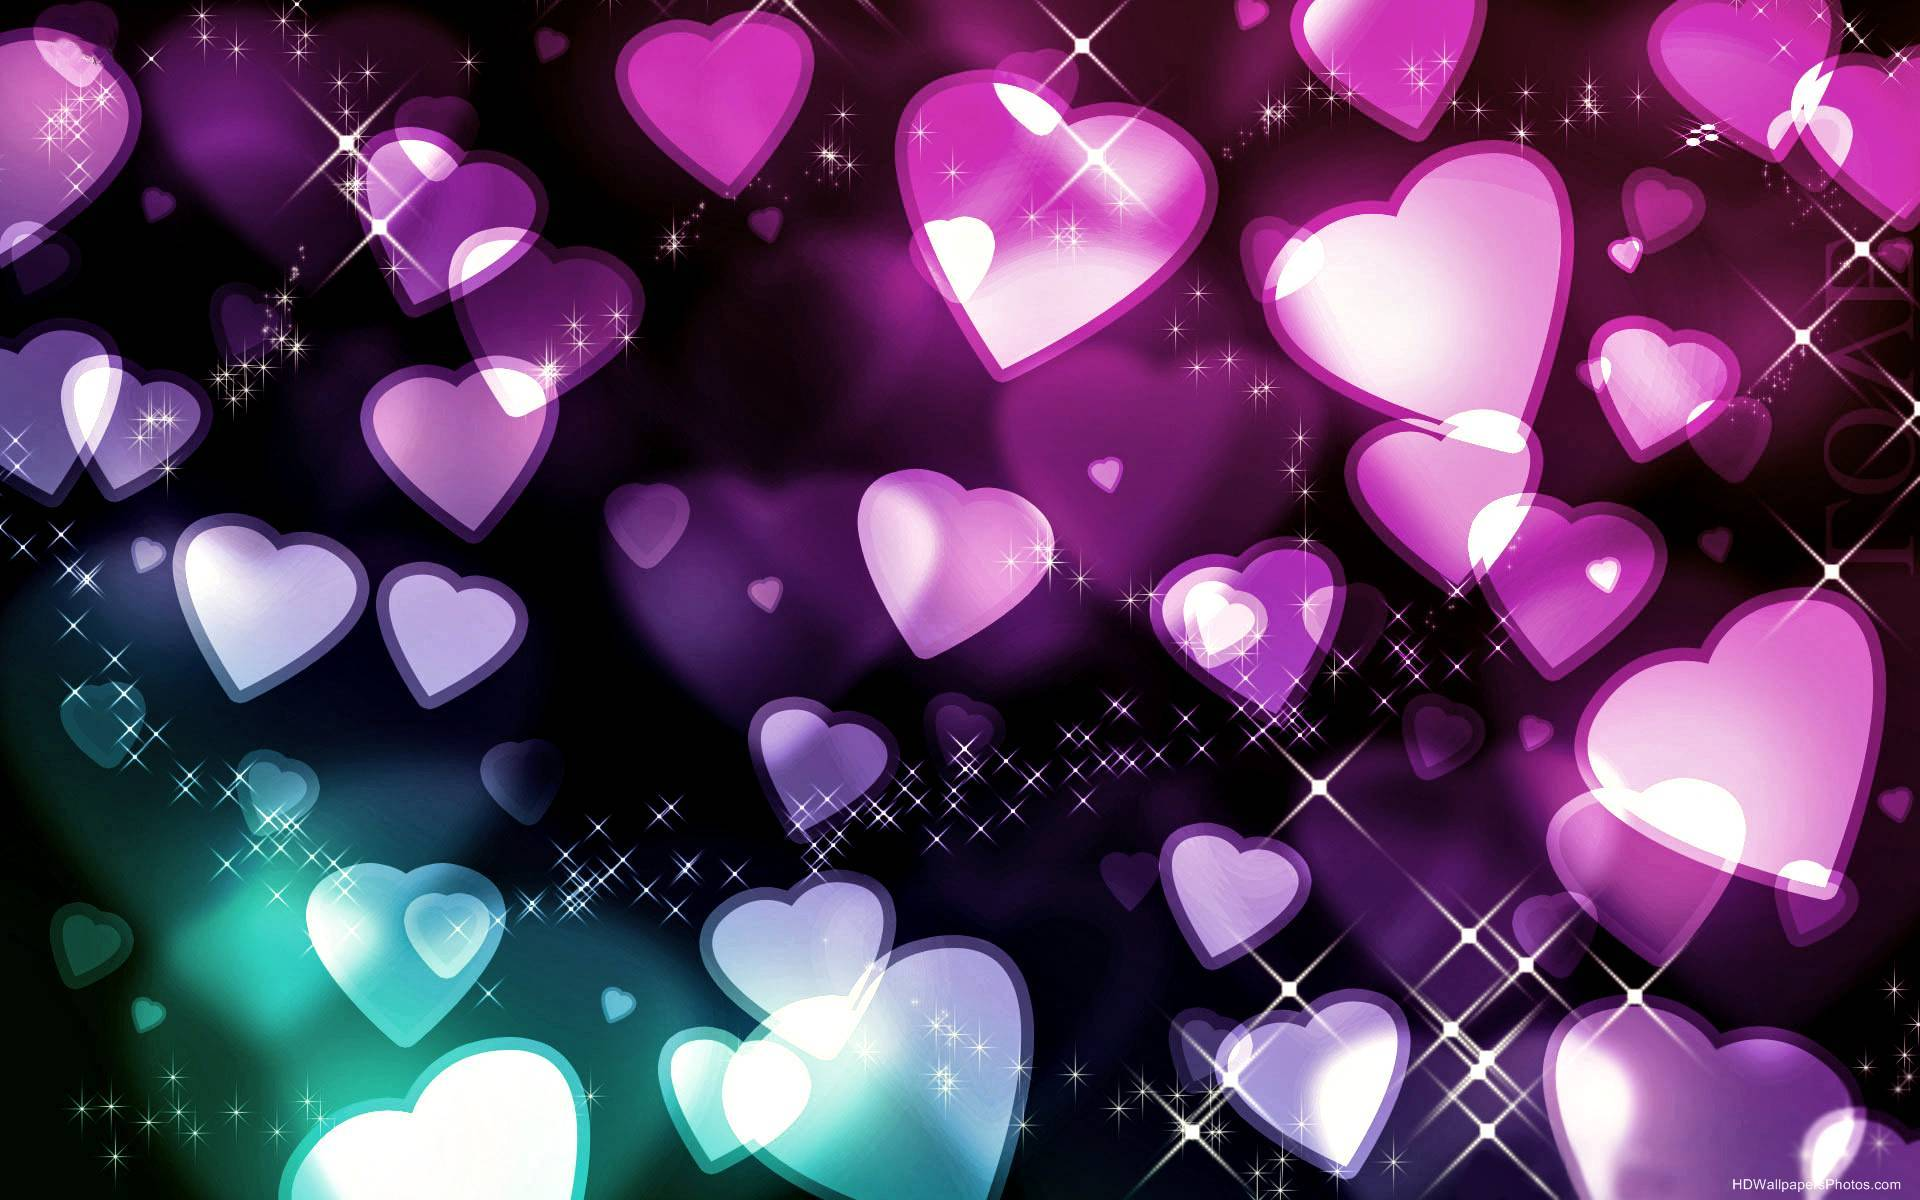 Colorful Heart Backgrounds - WallpaperSafari